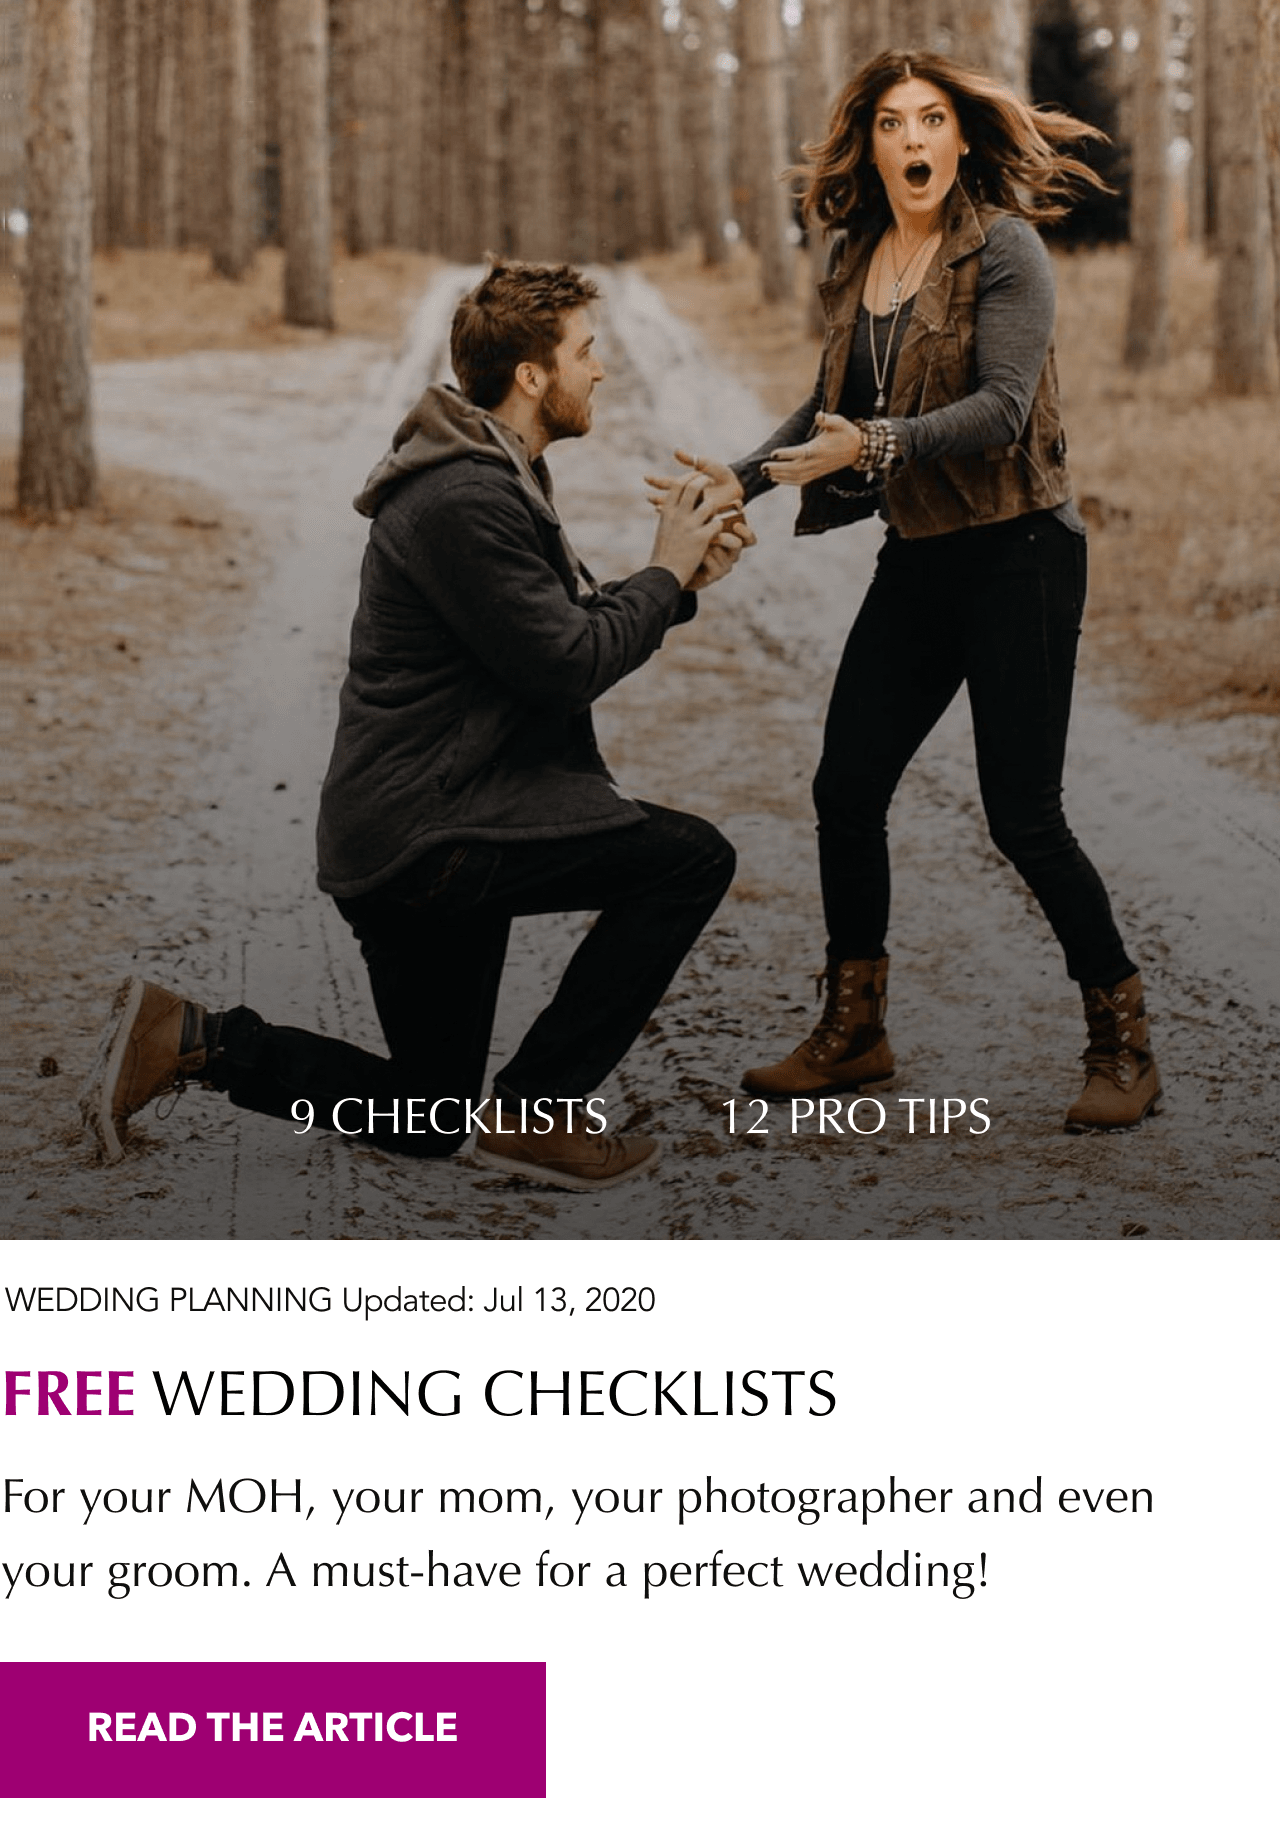 engaged couple wedding checklists banner